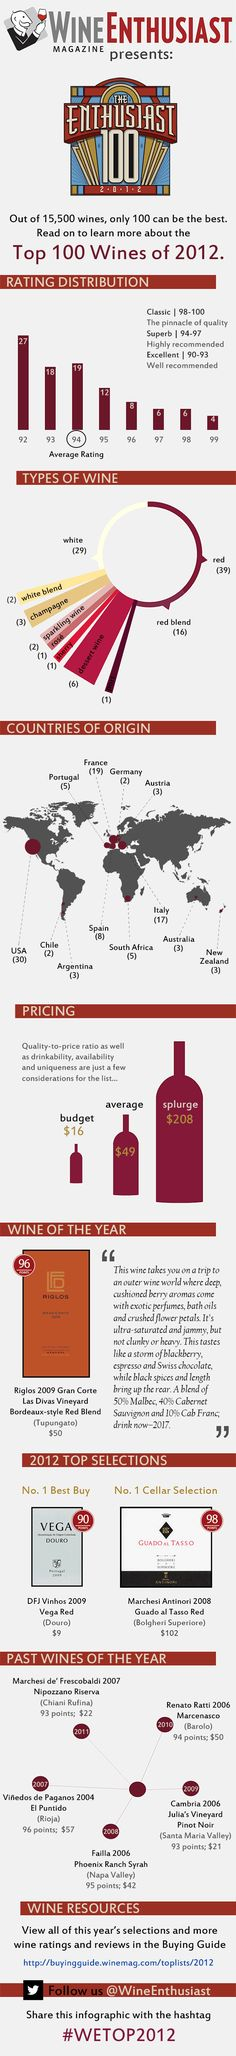 We thought with all this food, a little #wine would go well with this board. This #infographic goes inside the Wine Enthusiast's Top 100 for 2012, breaking down the country, type, price, and rating of their 100 best bottles. Cheers! #top100